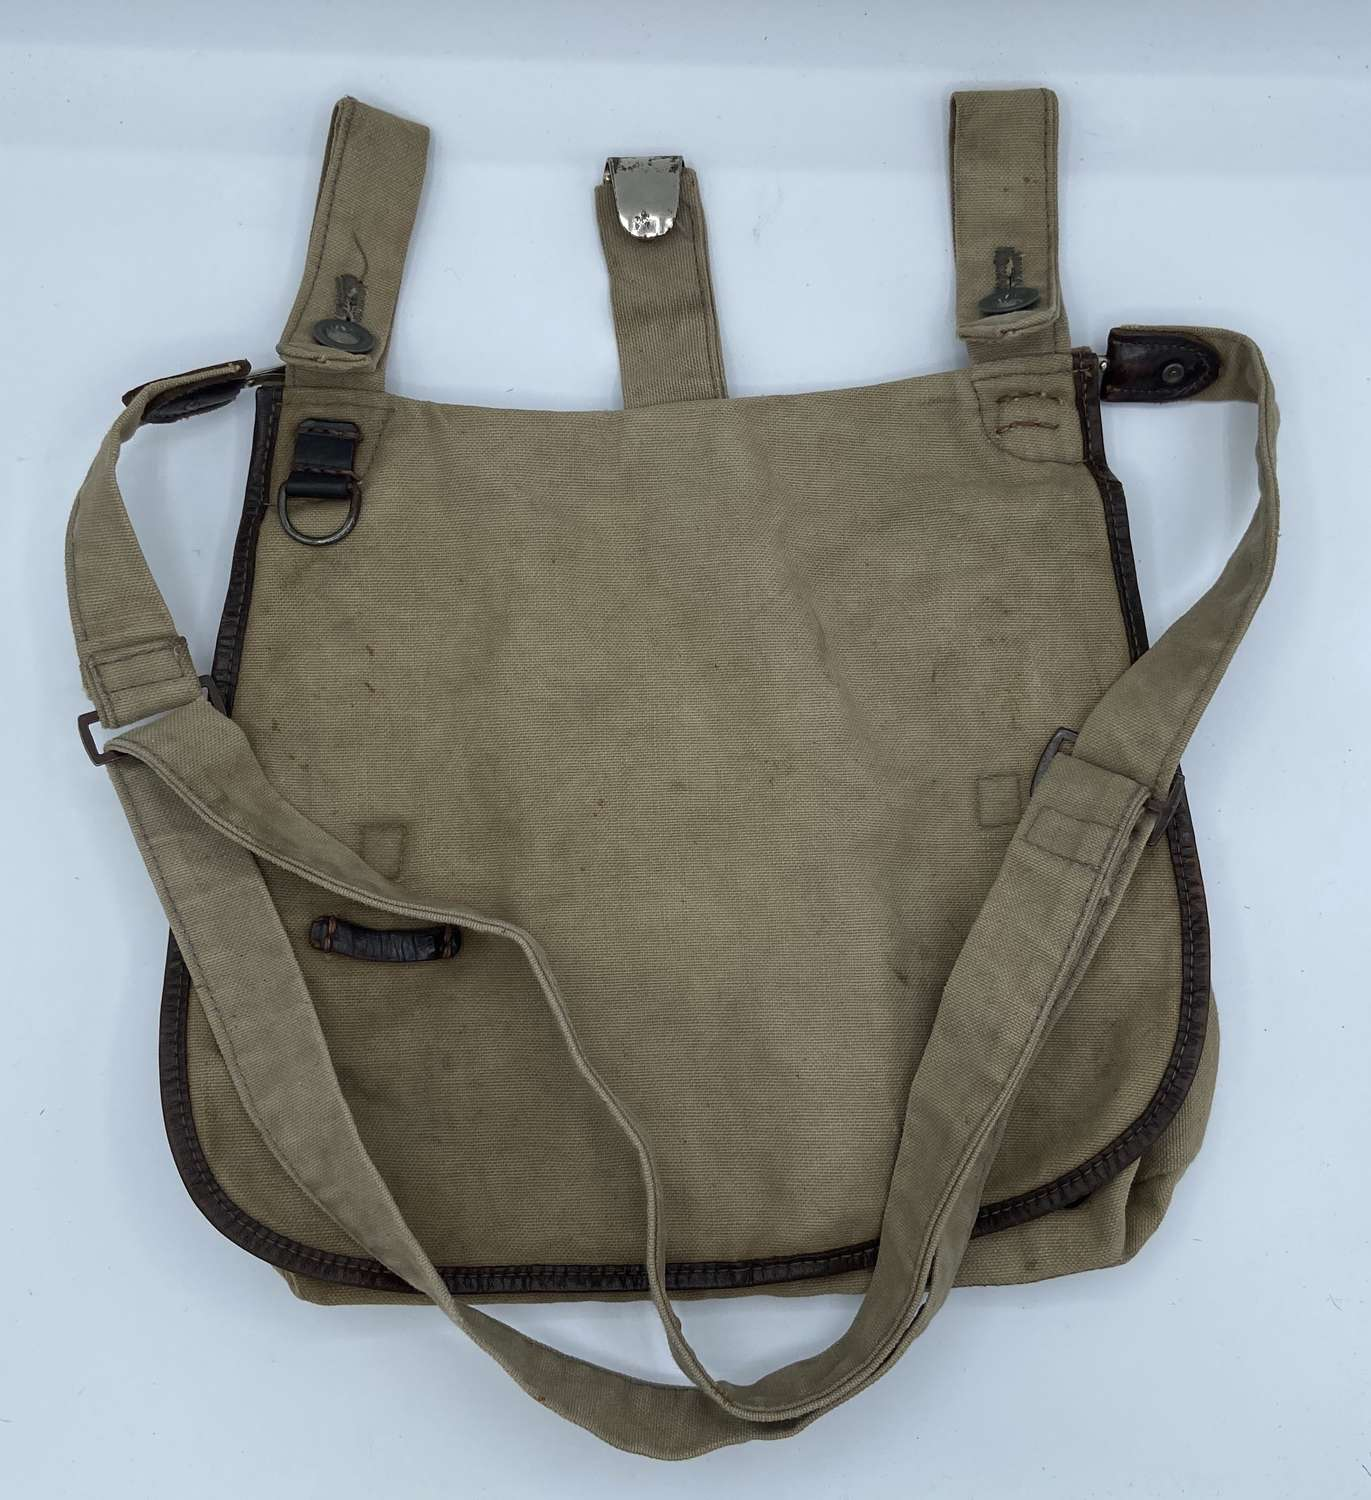 Original Great Quality WW2 German Hitler Jugend Bread Bag And Strap